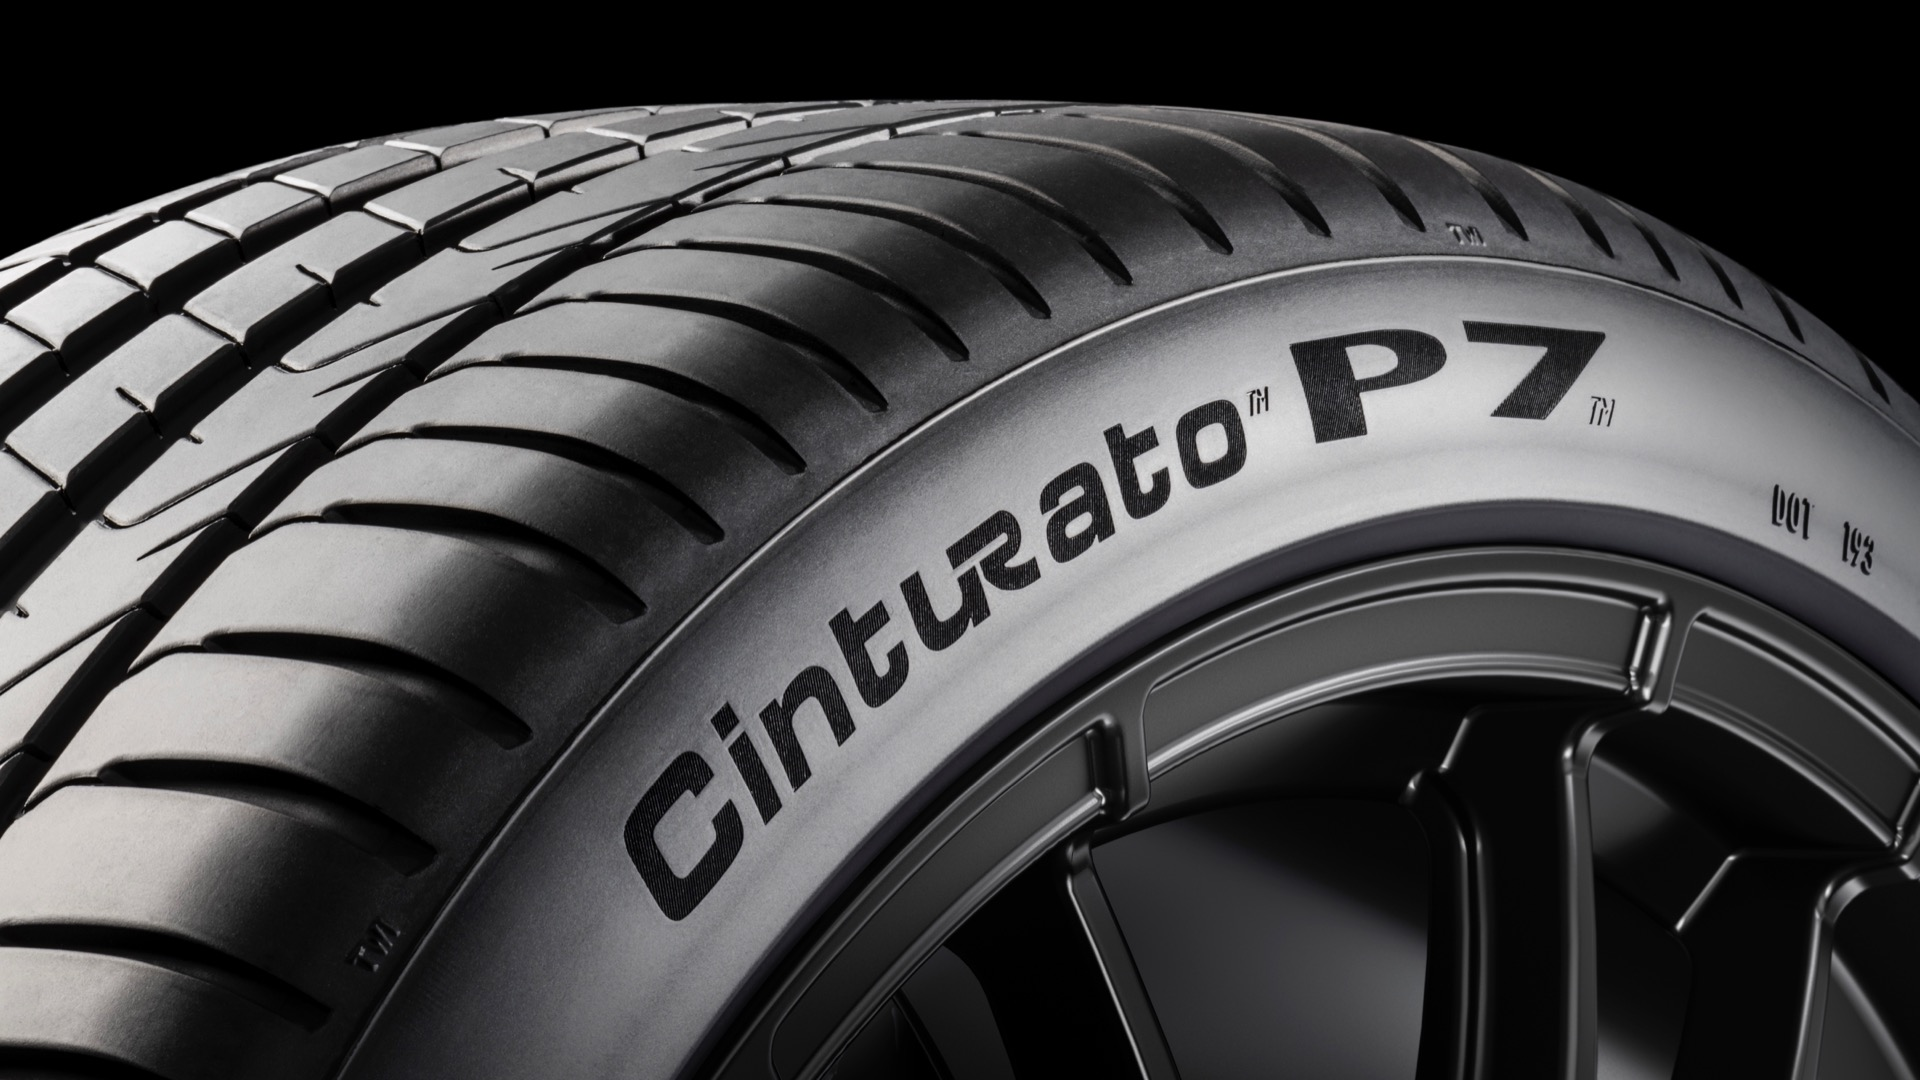 New Pirelli tire automatically adjusts to temperature, driving conditions